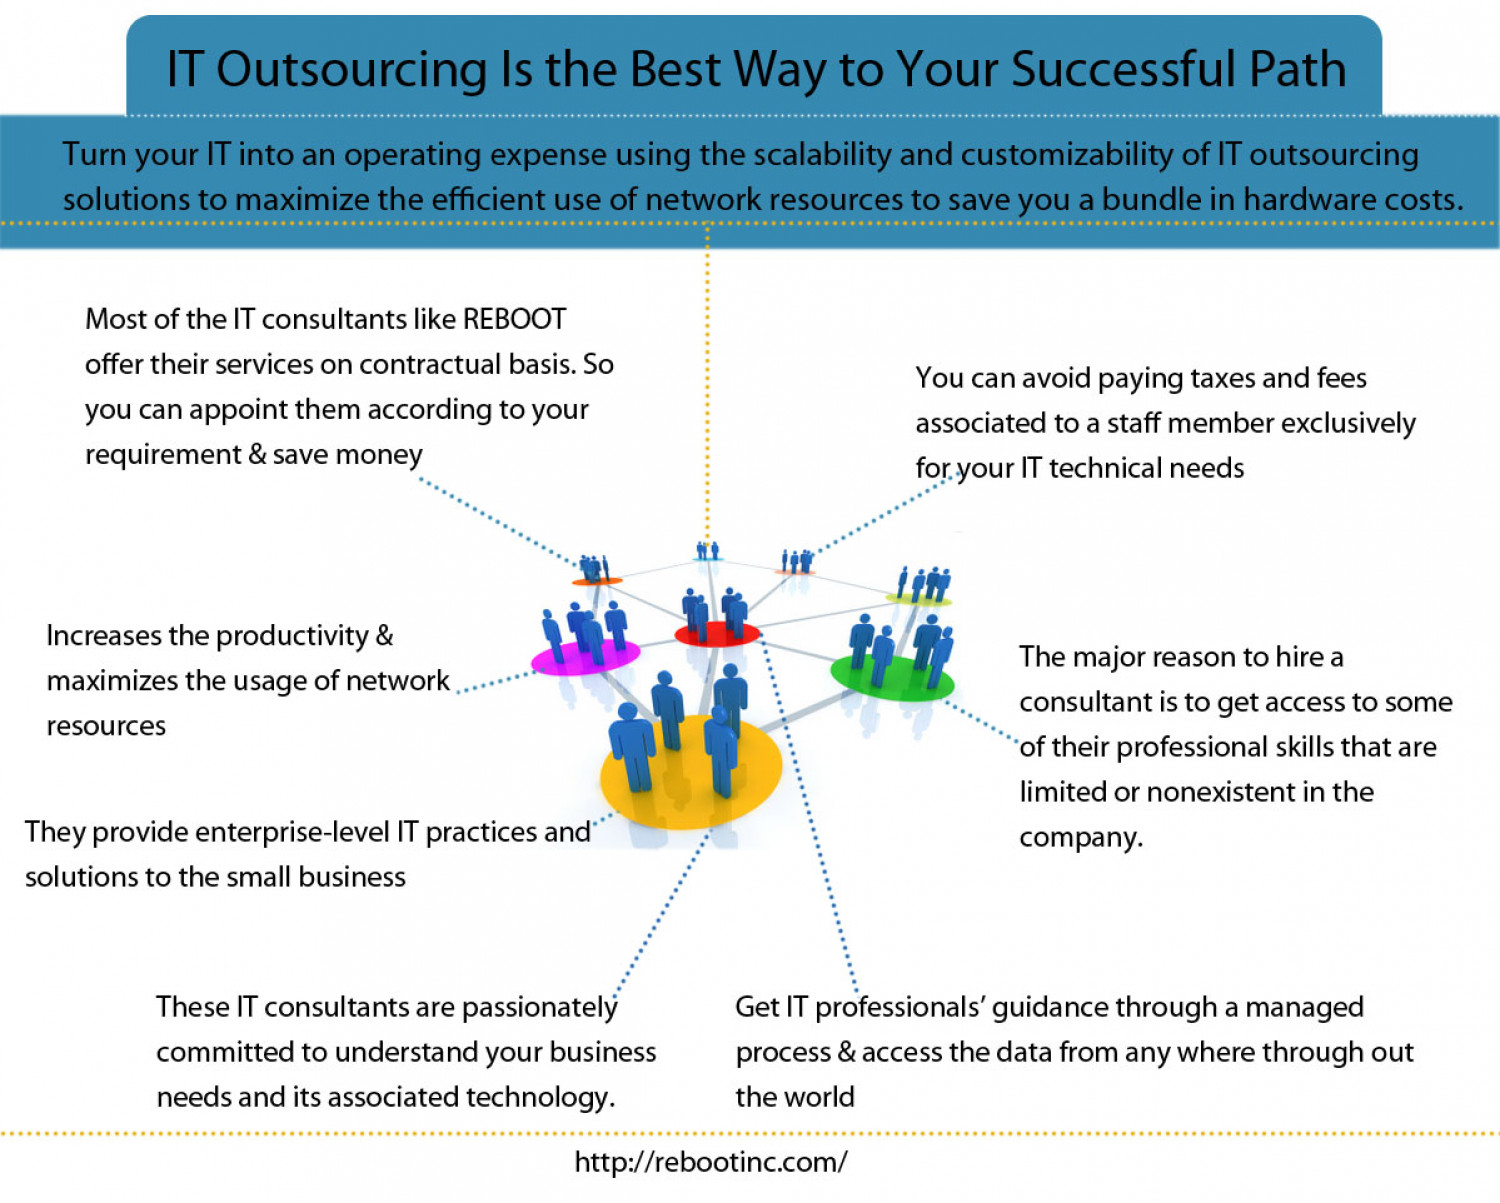 IT Outsourcing Is the Best Way to Your Successful Path Infographic